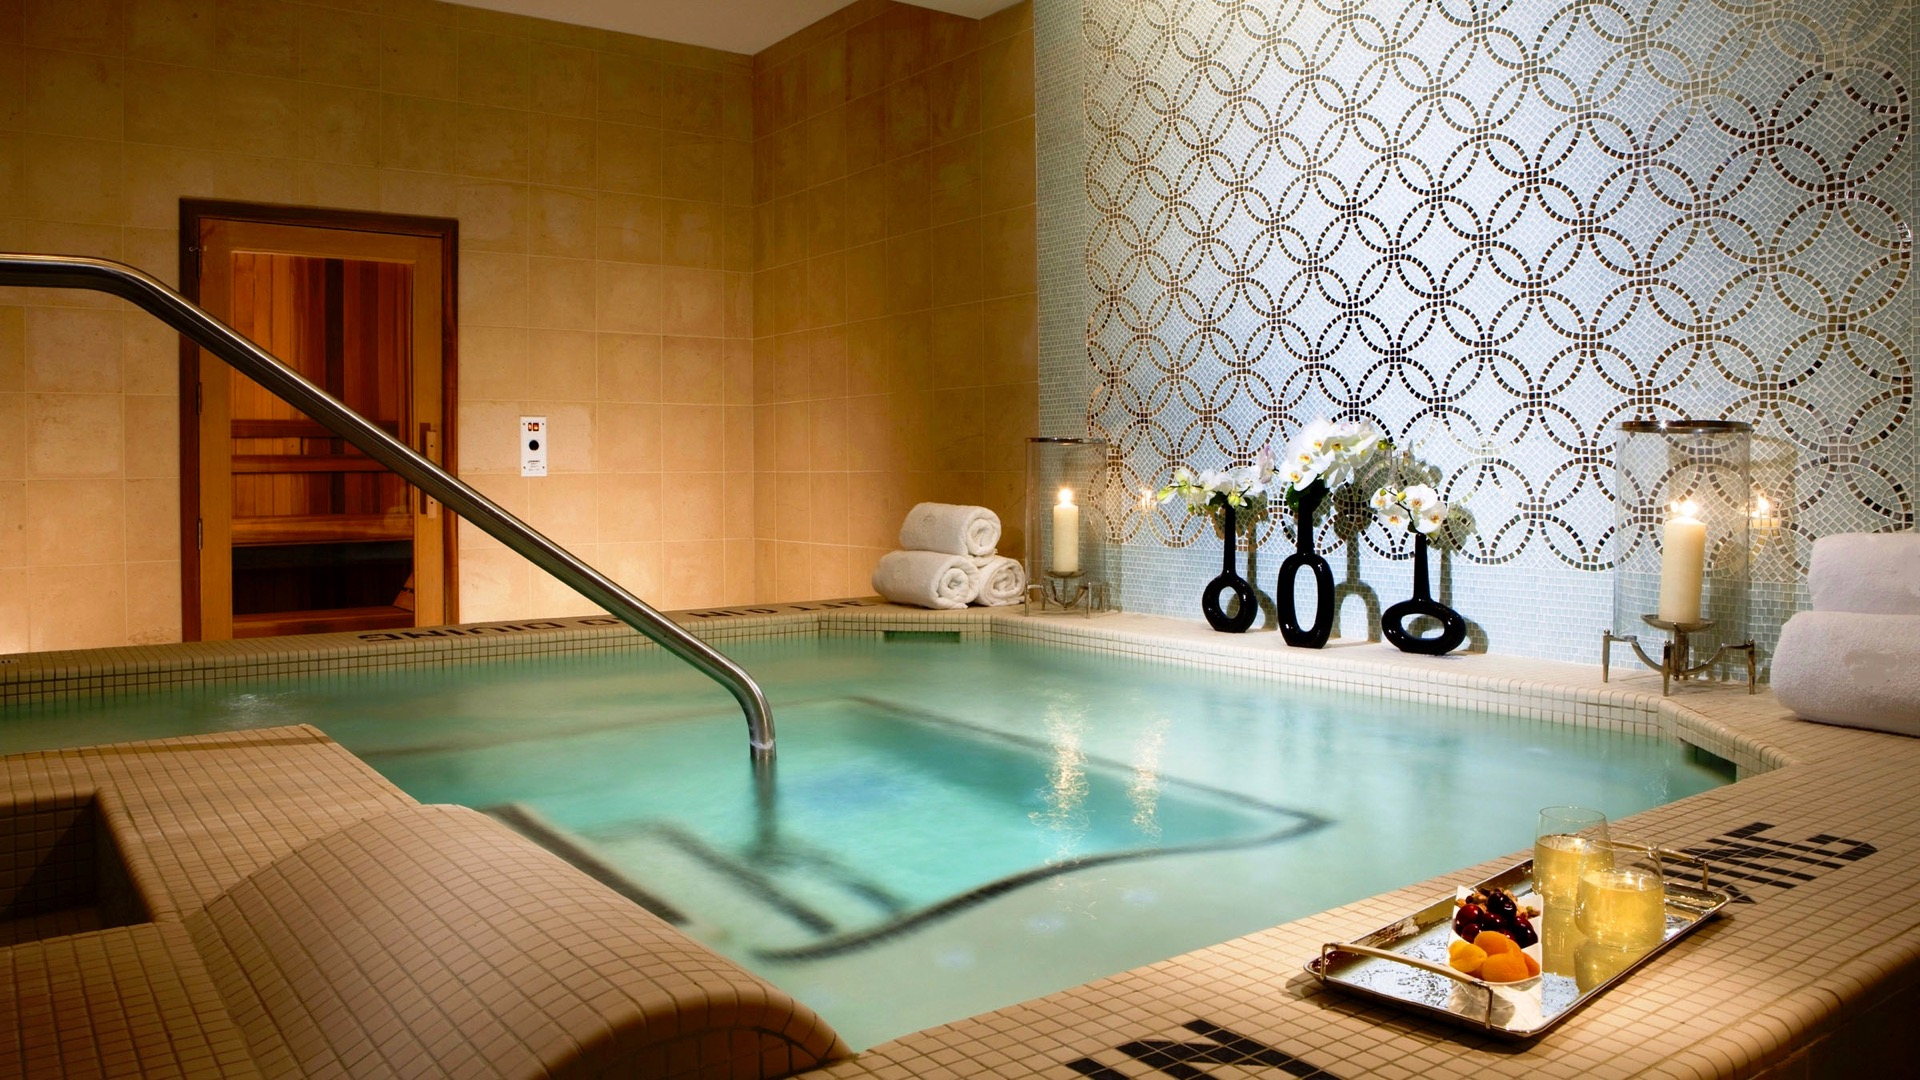 Spas of america the best resort hotel and health spas for Best health spas in the us